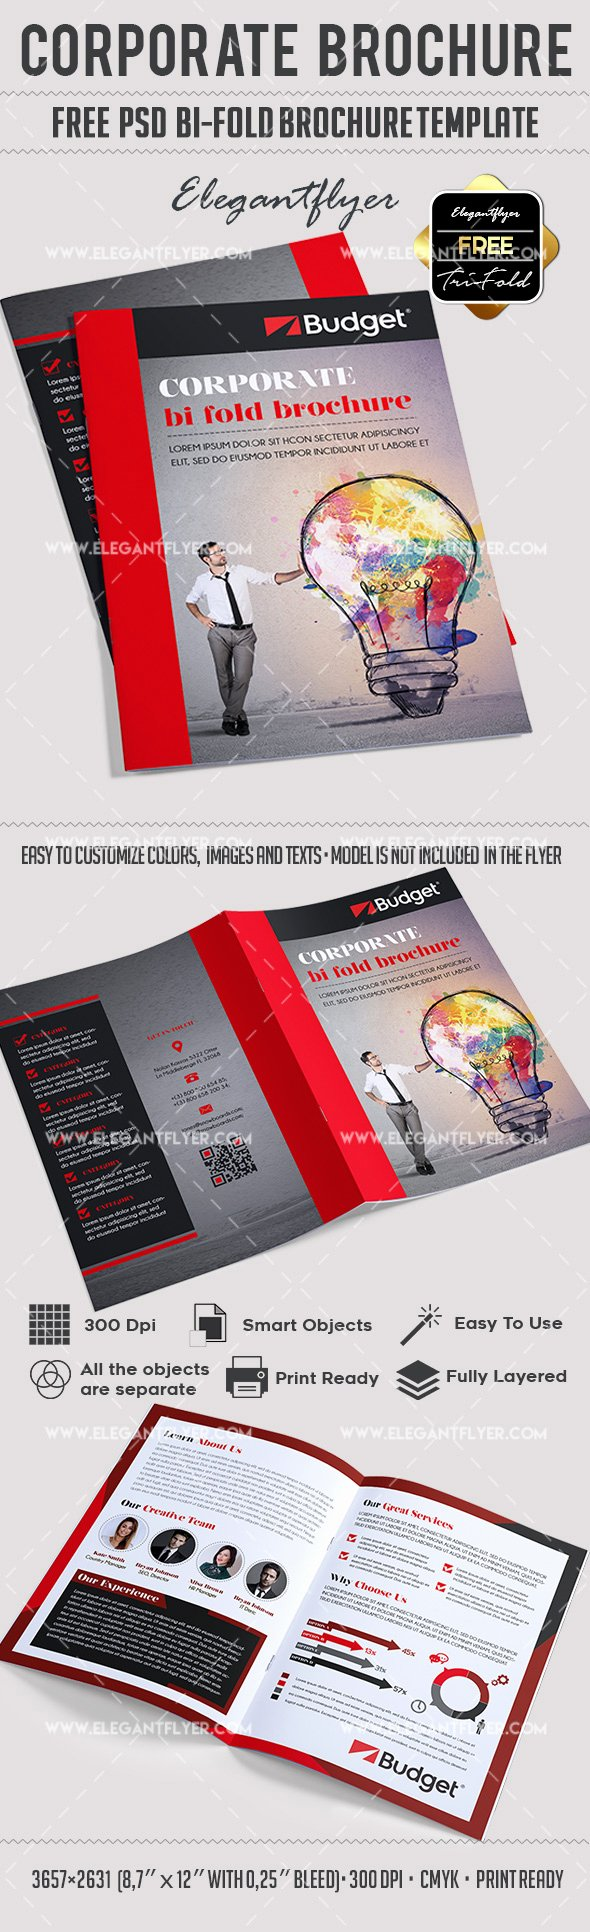 Bi Fold Brochure Template Luxury Corporate – Free Psd Bi Fold Psd Brochure Template – by